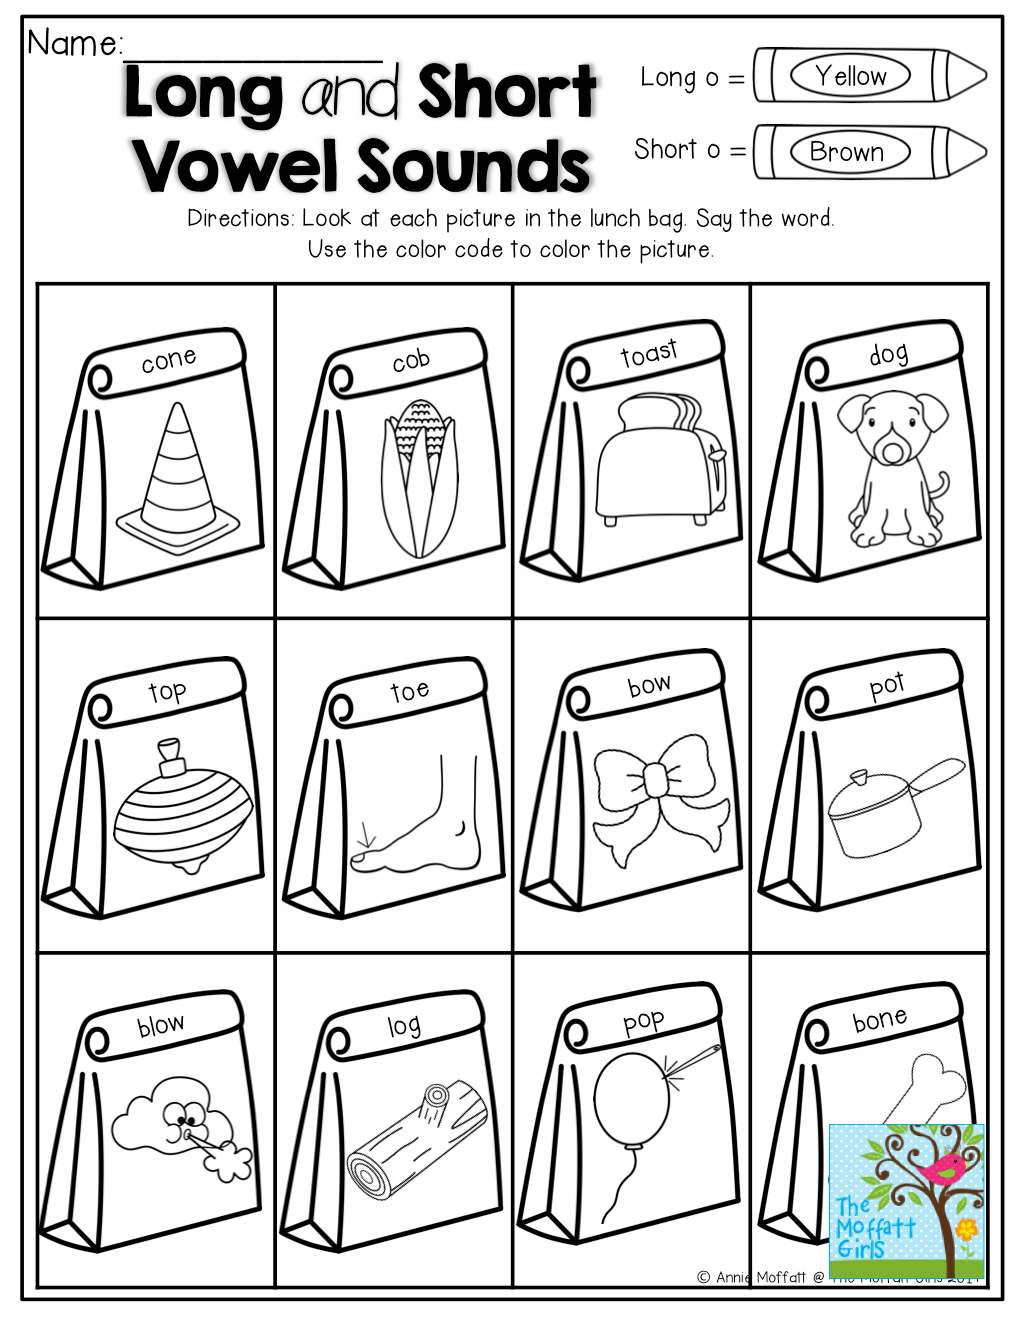 Long And Short Vowel Sounds